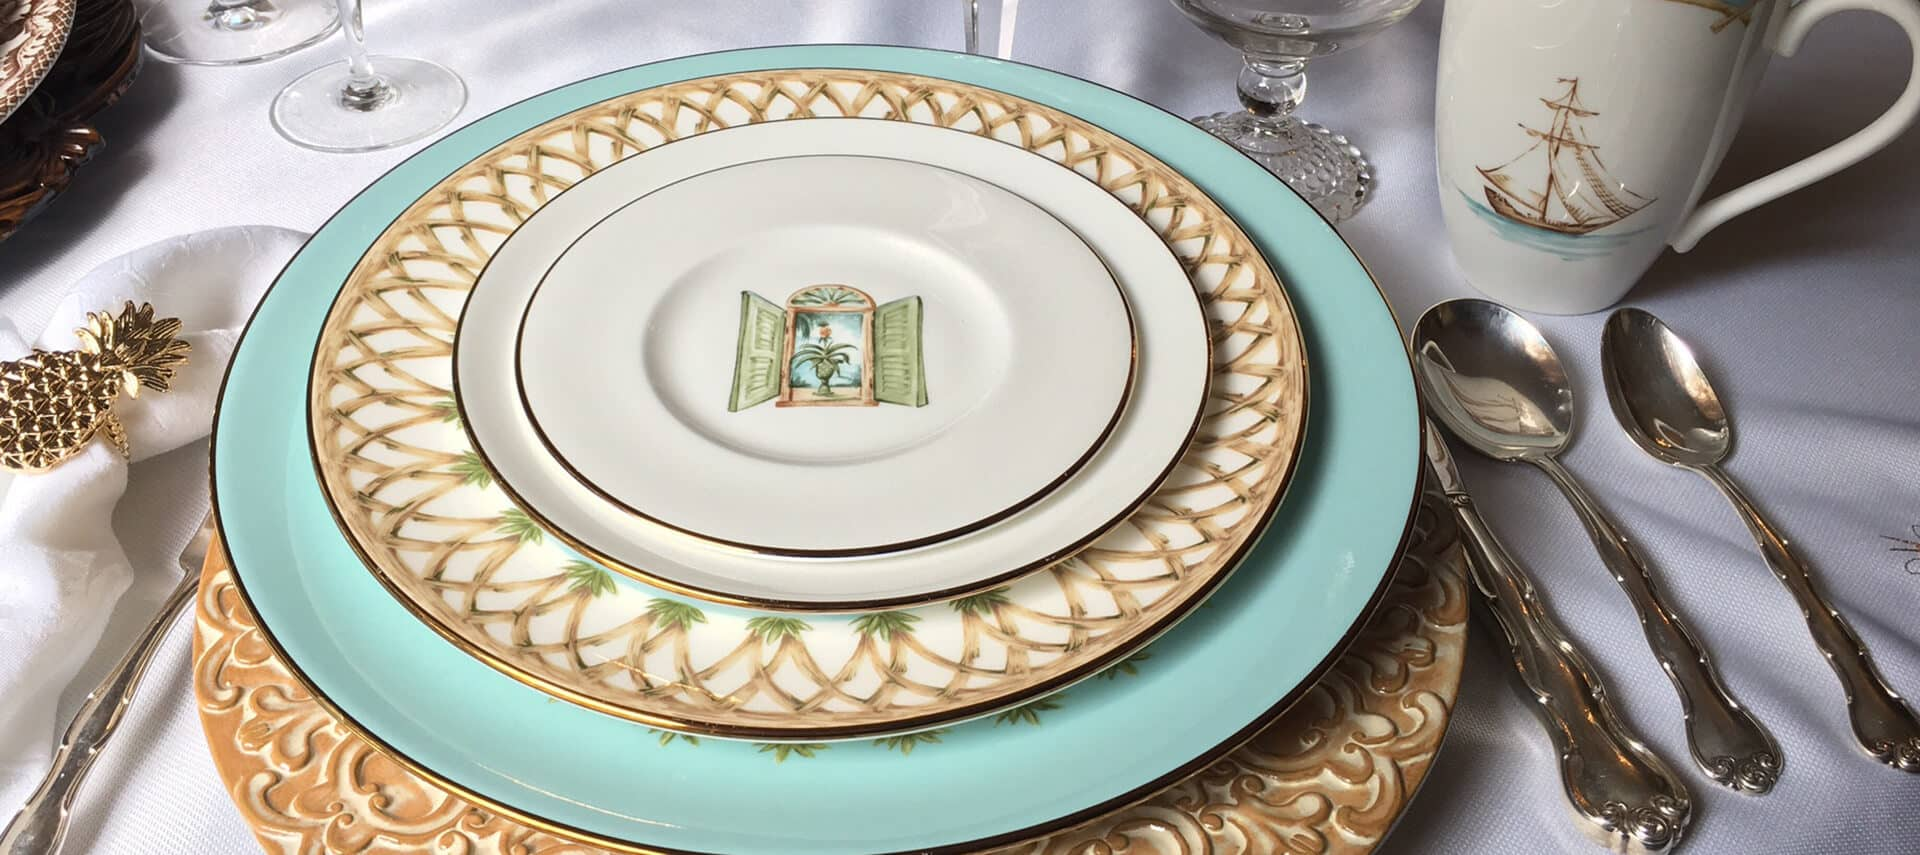 Gold and turquoise plates on gold charger plate